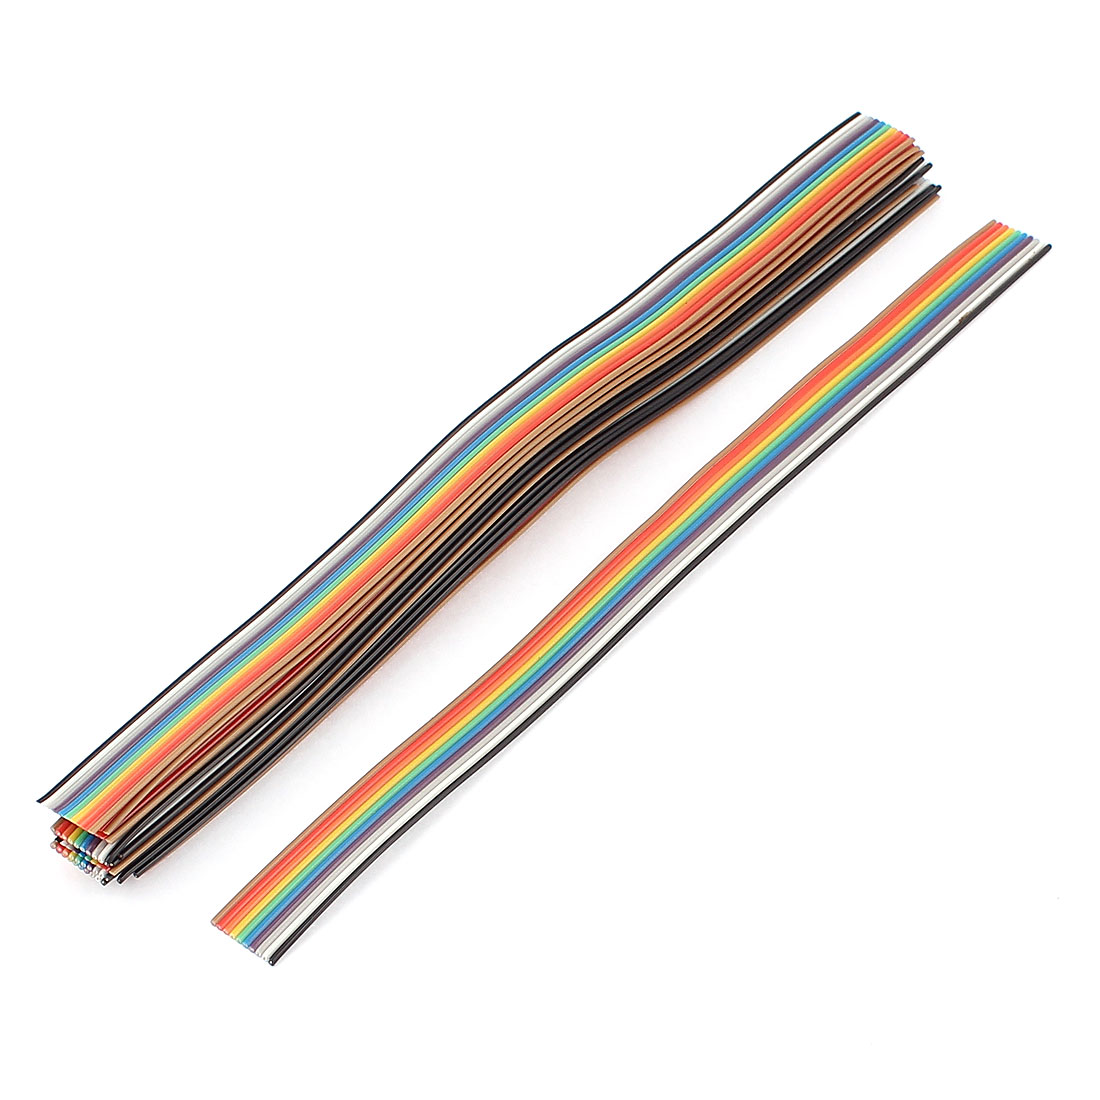 15 Pcs 200mm Long 10-Pin Rainbow Color Flat Ribbon Cable IDC Wire